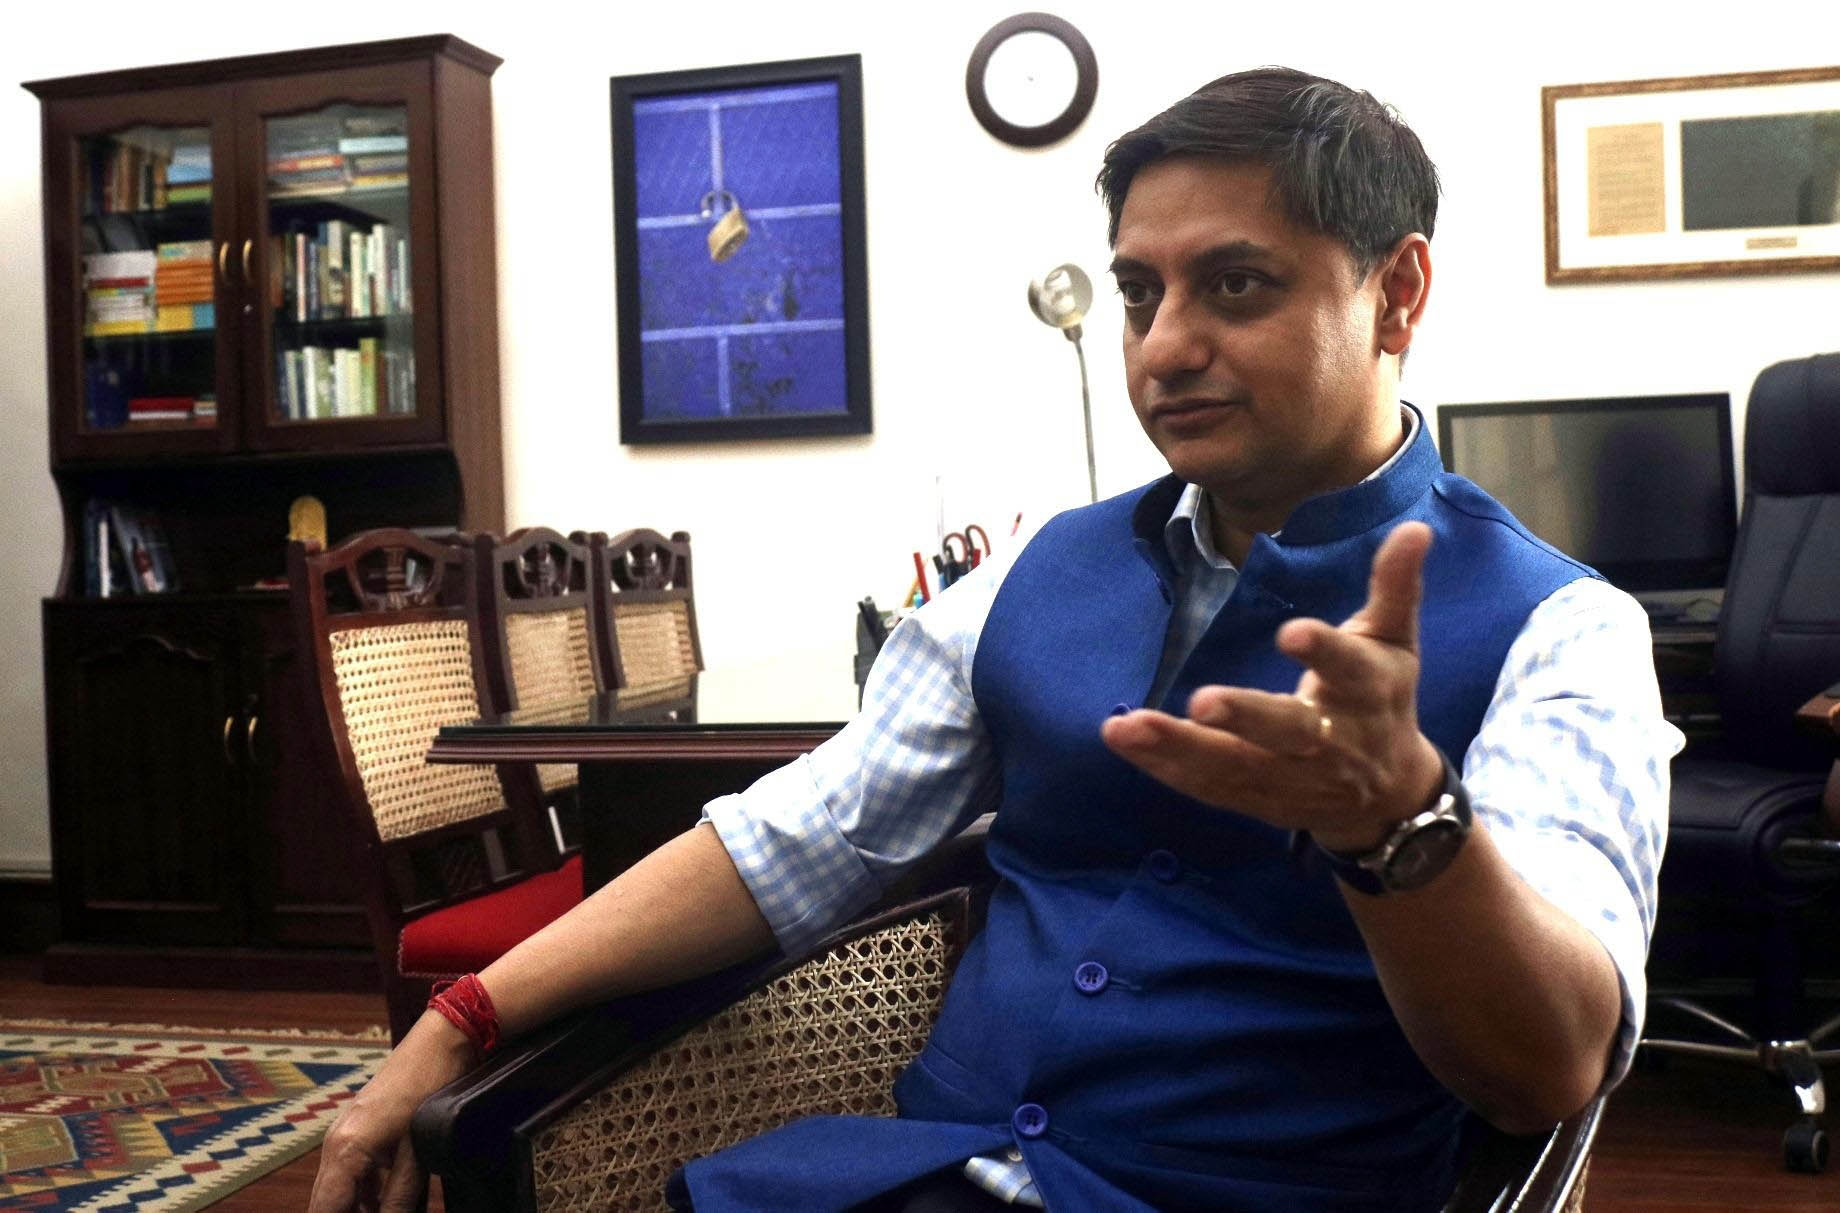 Govt to return to pre-COVID fiscal deficit path in 3 yrs: Sanjeev Sanyal